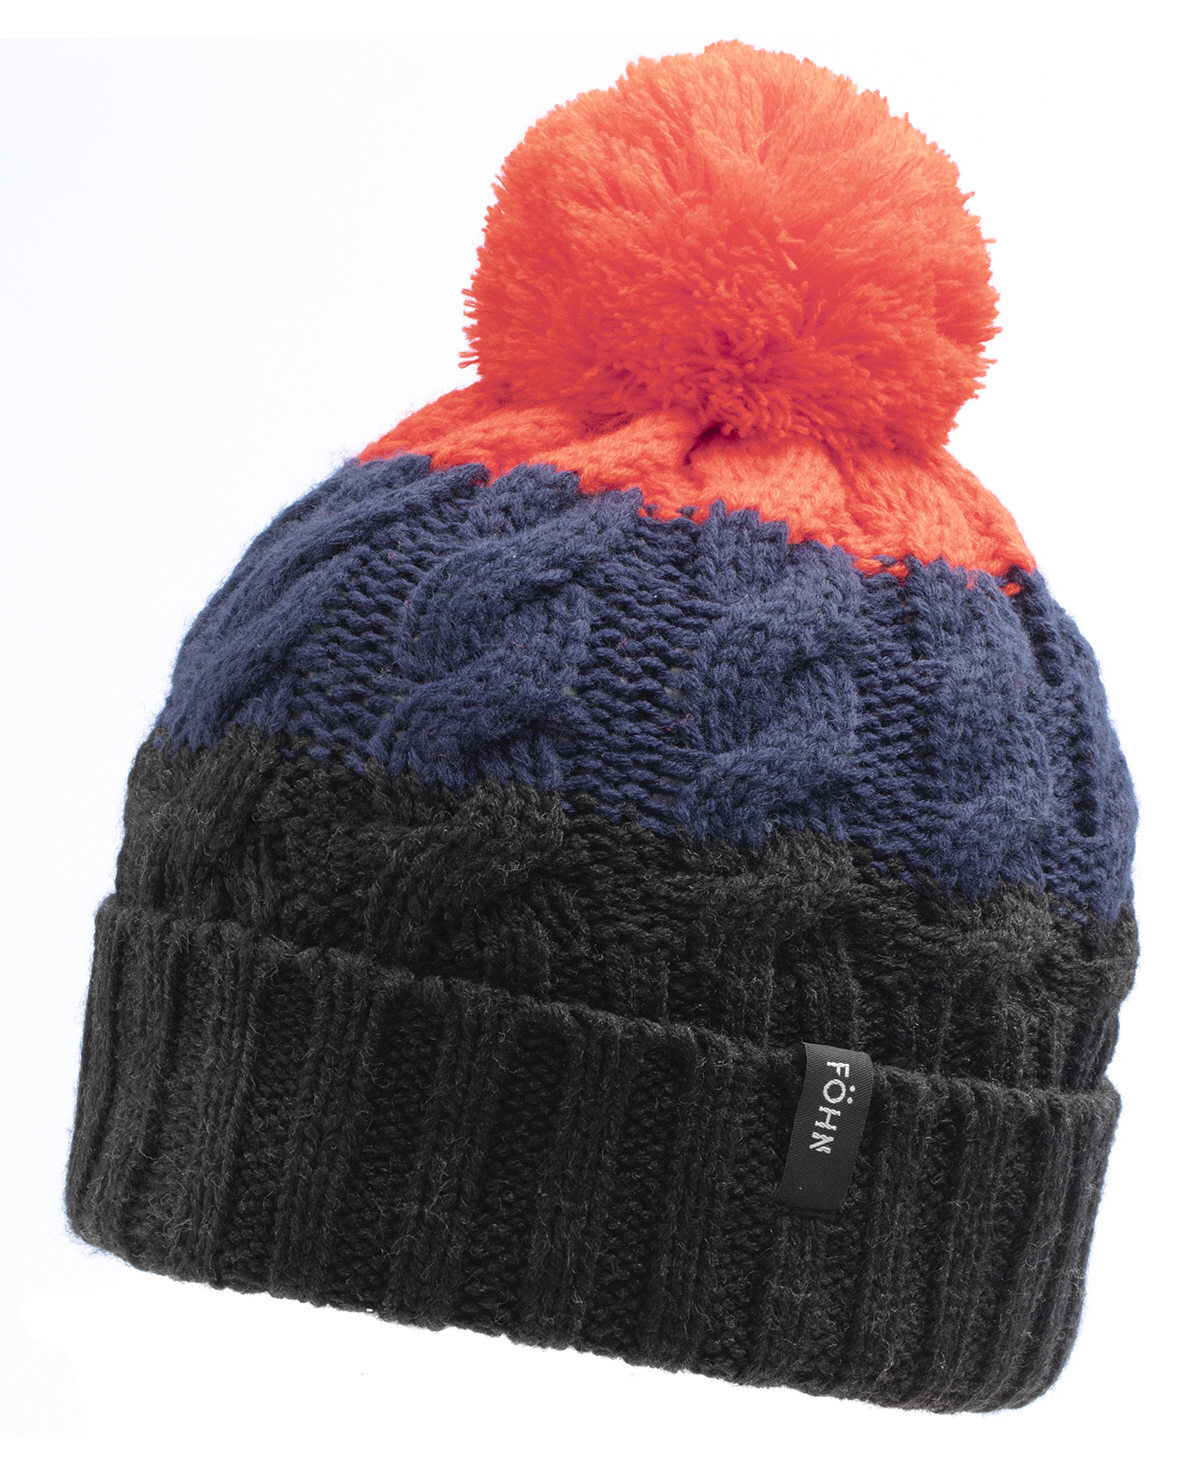 Föhn Bobble Hue (Sort/Orange) | Headwear